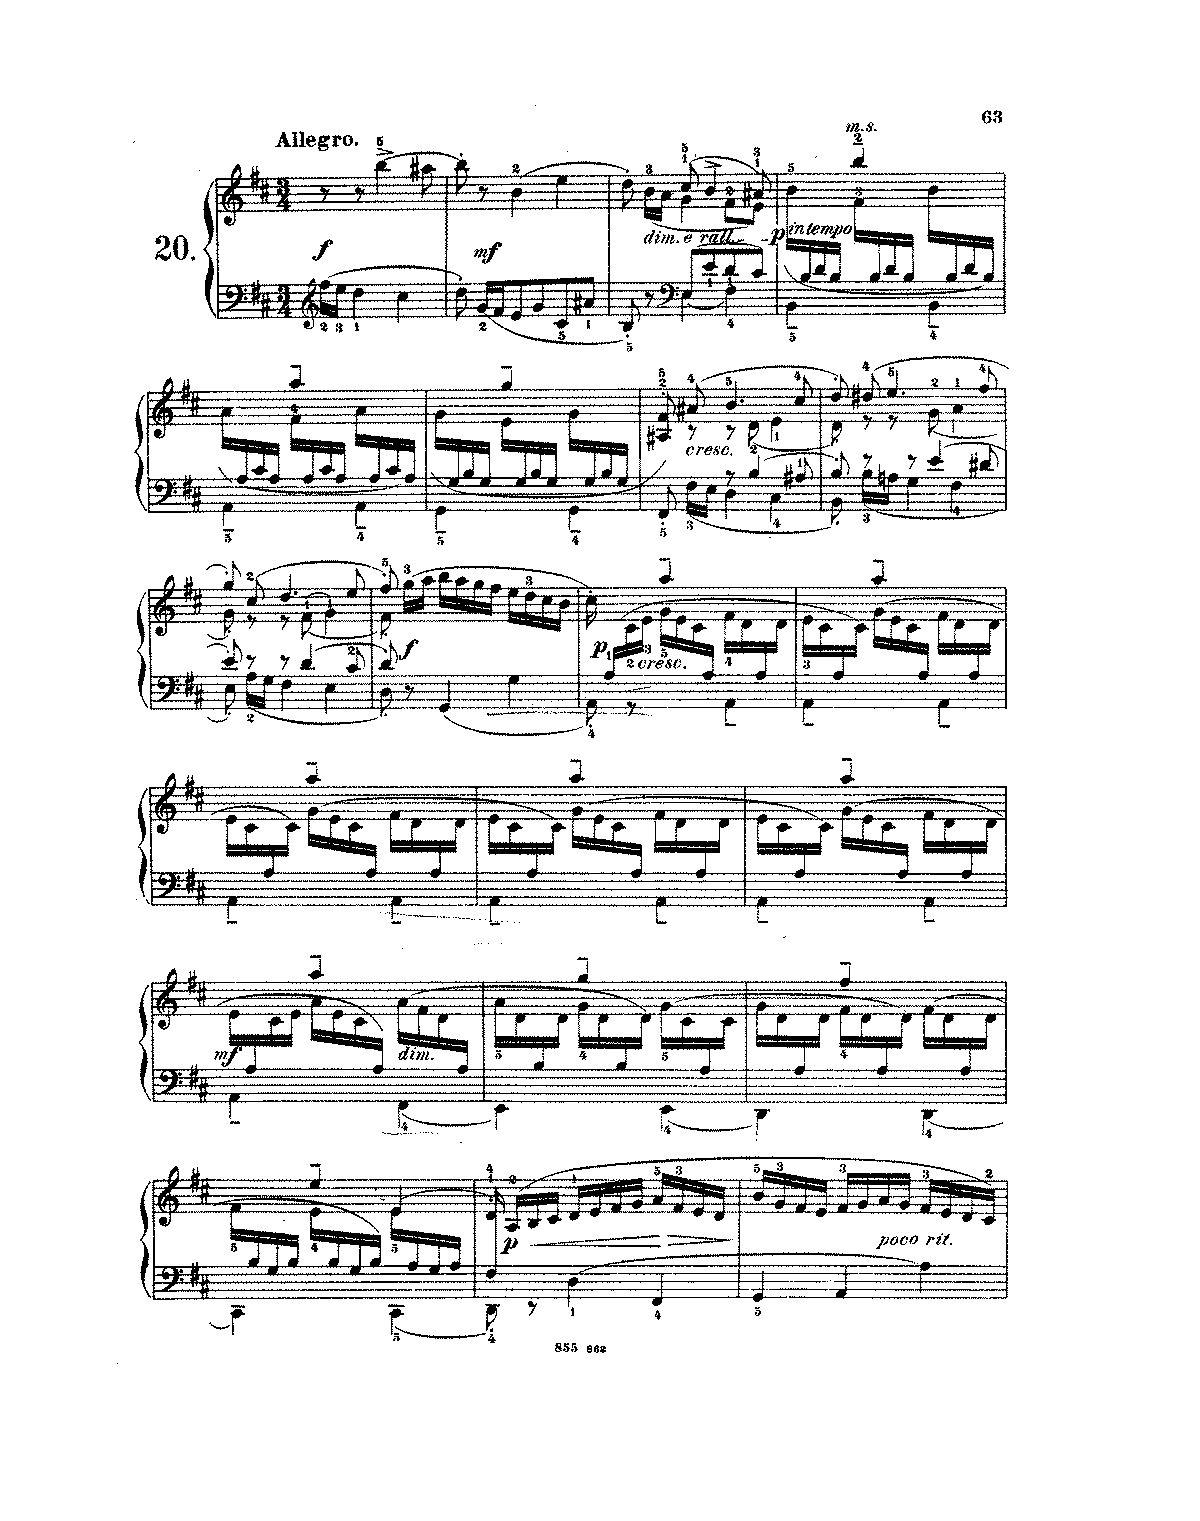 PMLP309580-Sibley1802.22722 - No. 20 - Sonata in B minor, K. 27.pdf